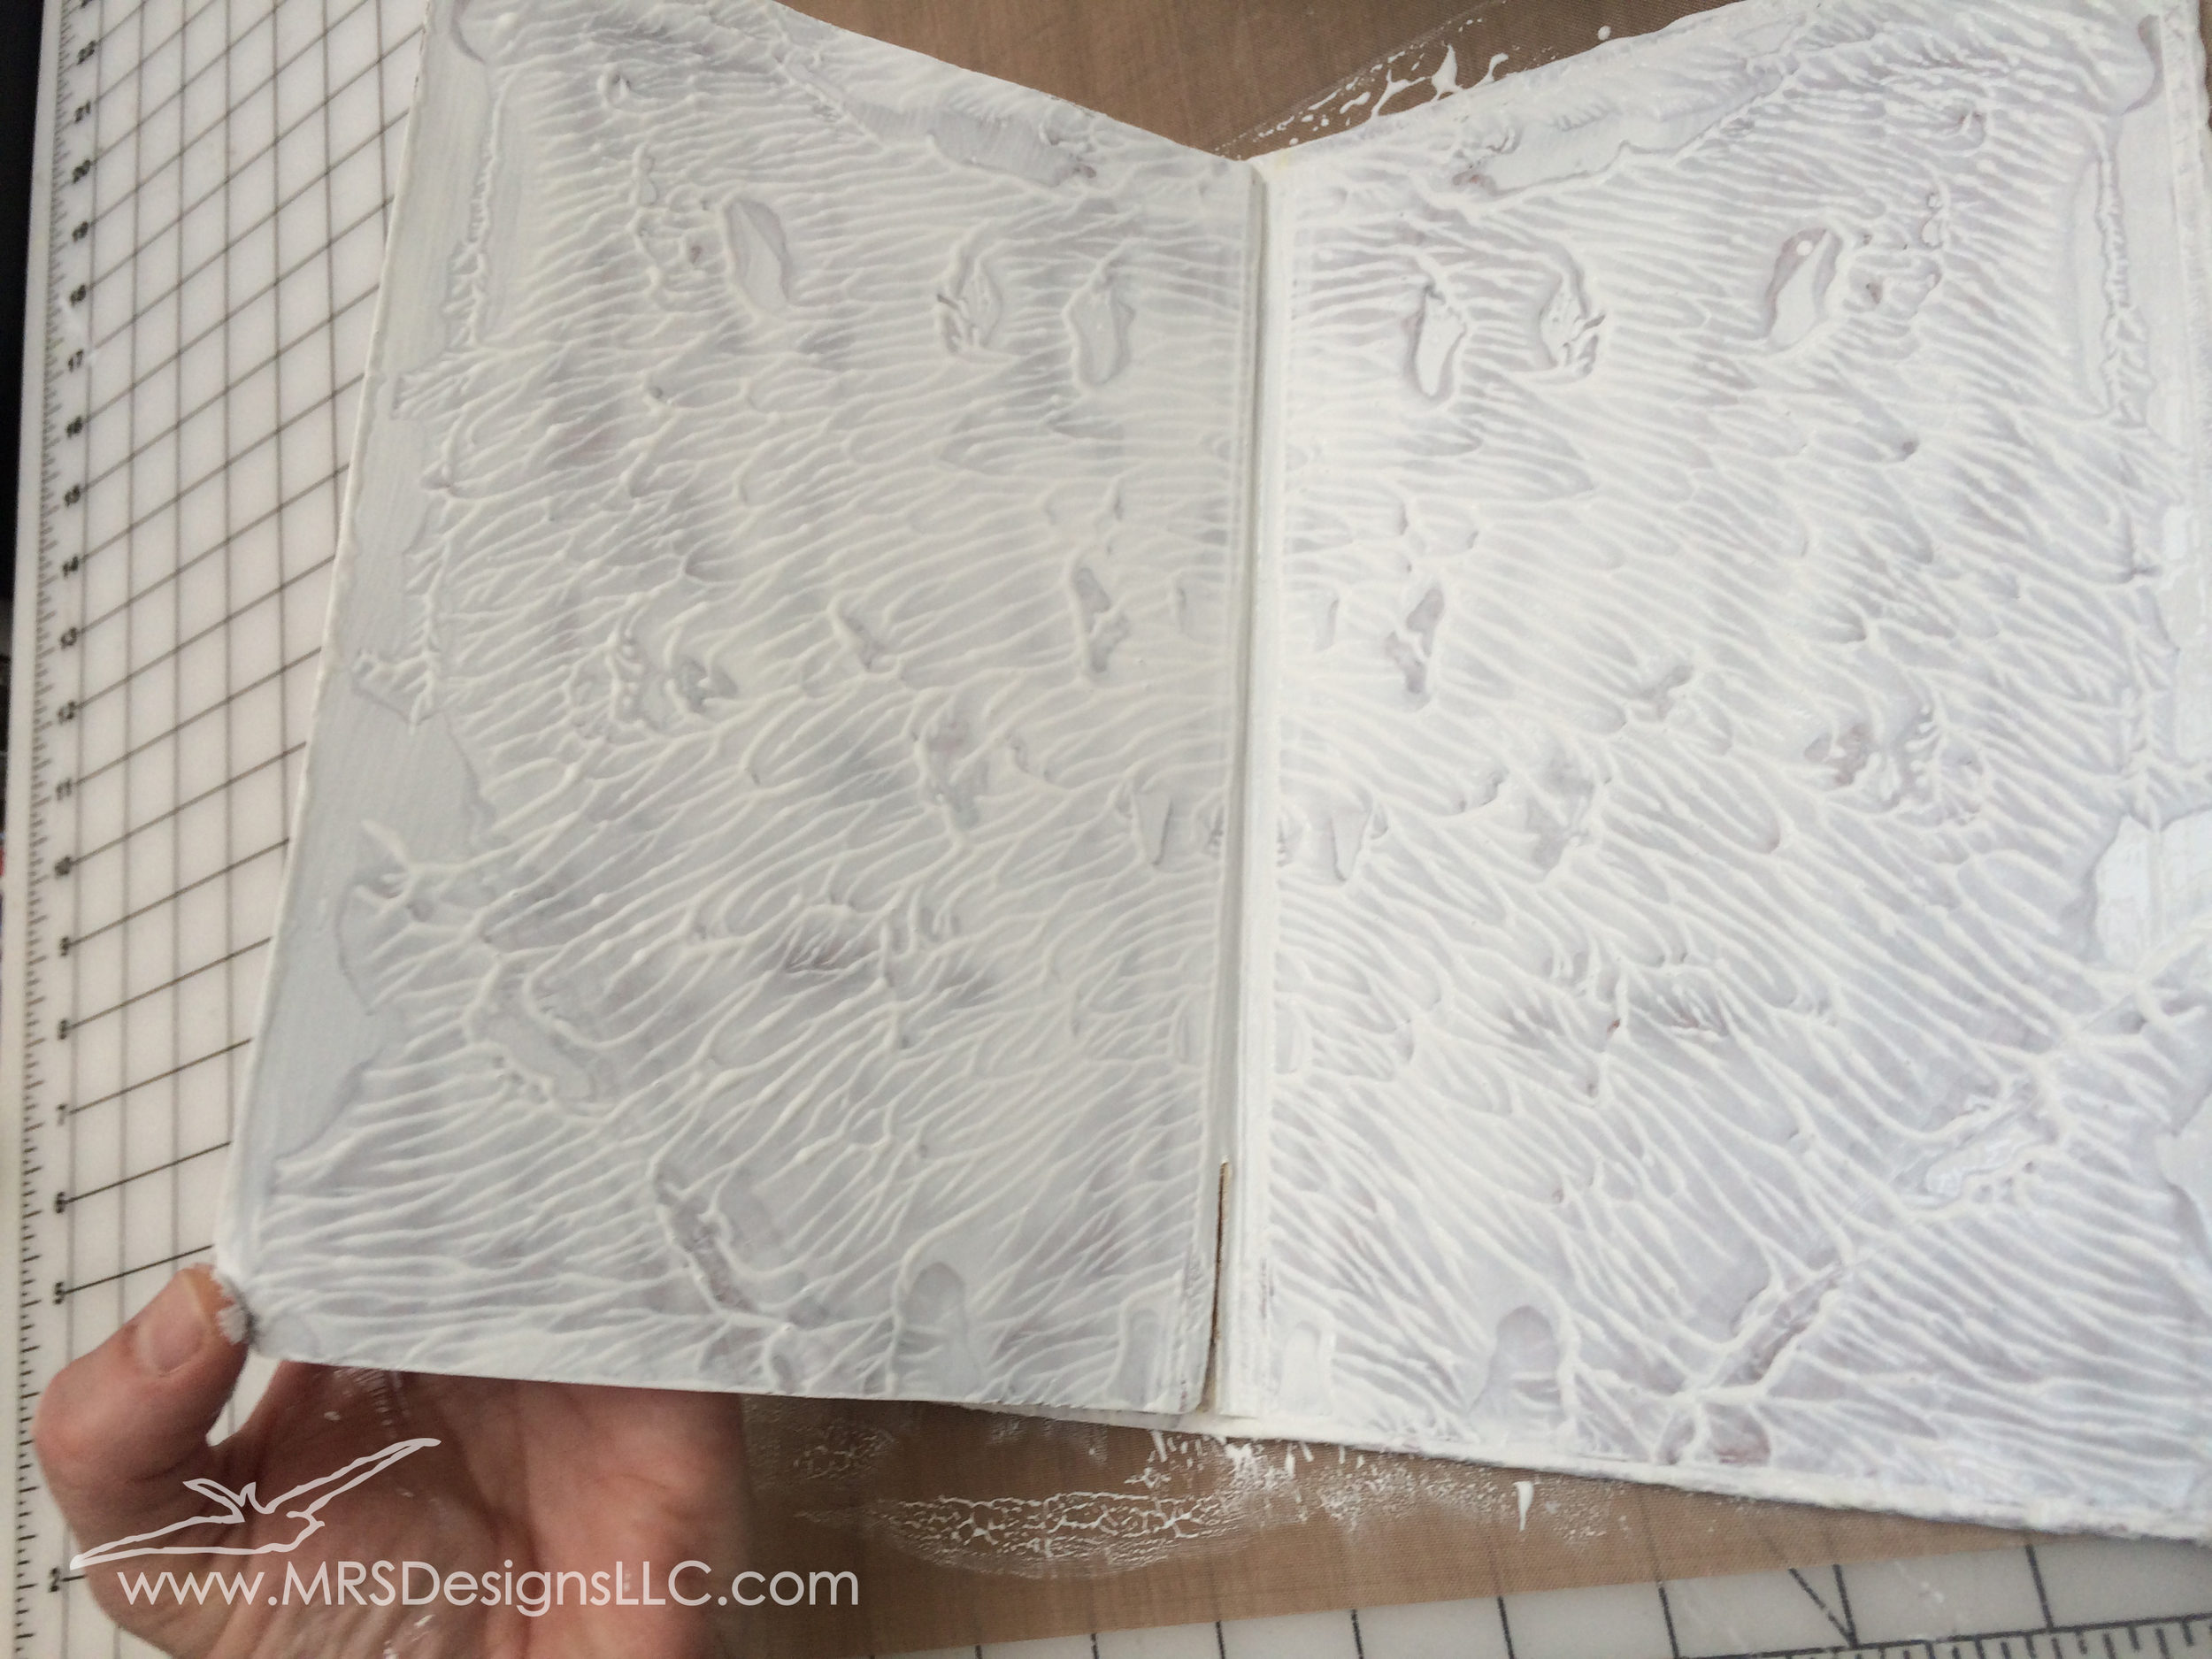 MRS Designs Blog - Paint and Decoupage an Old Book Cover - Annie Sloan Paint Inside Pages